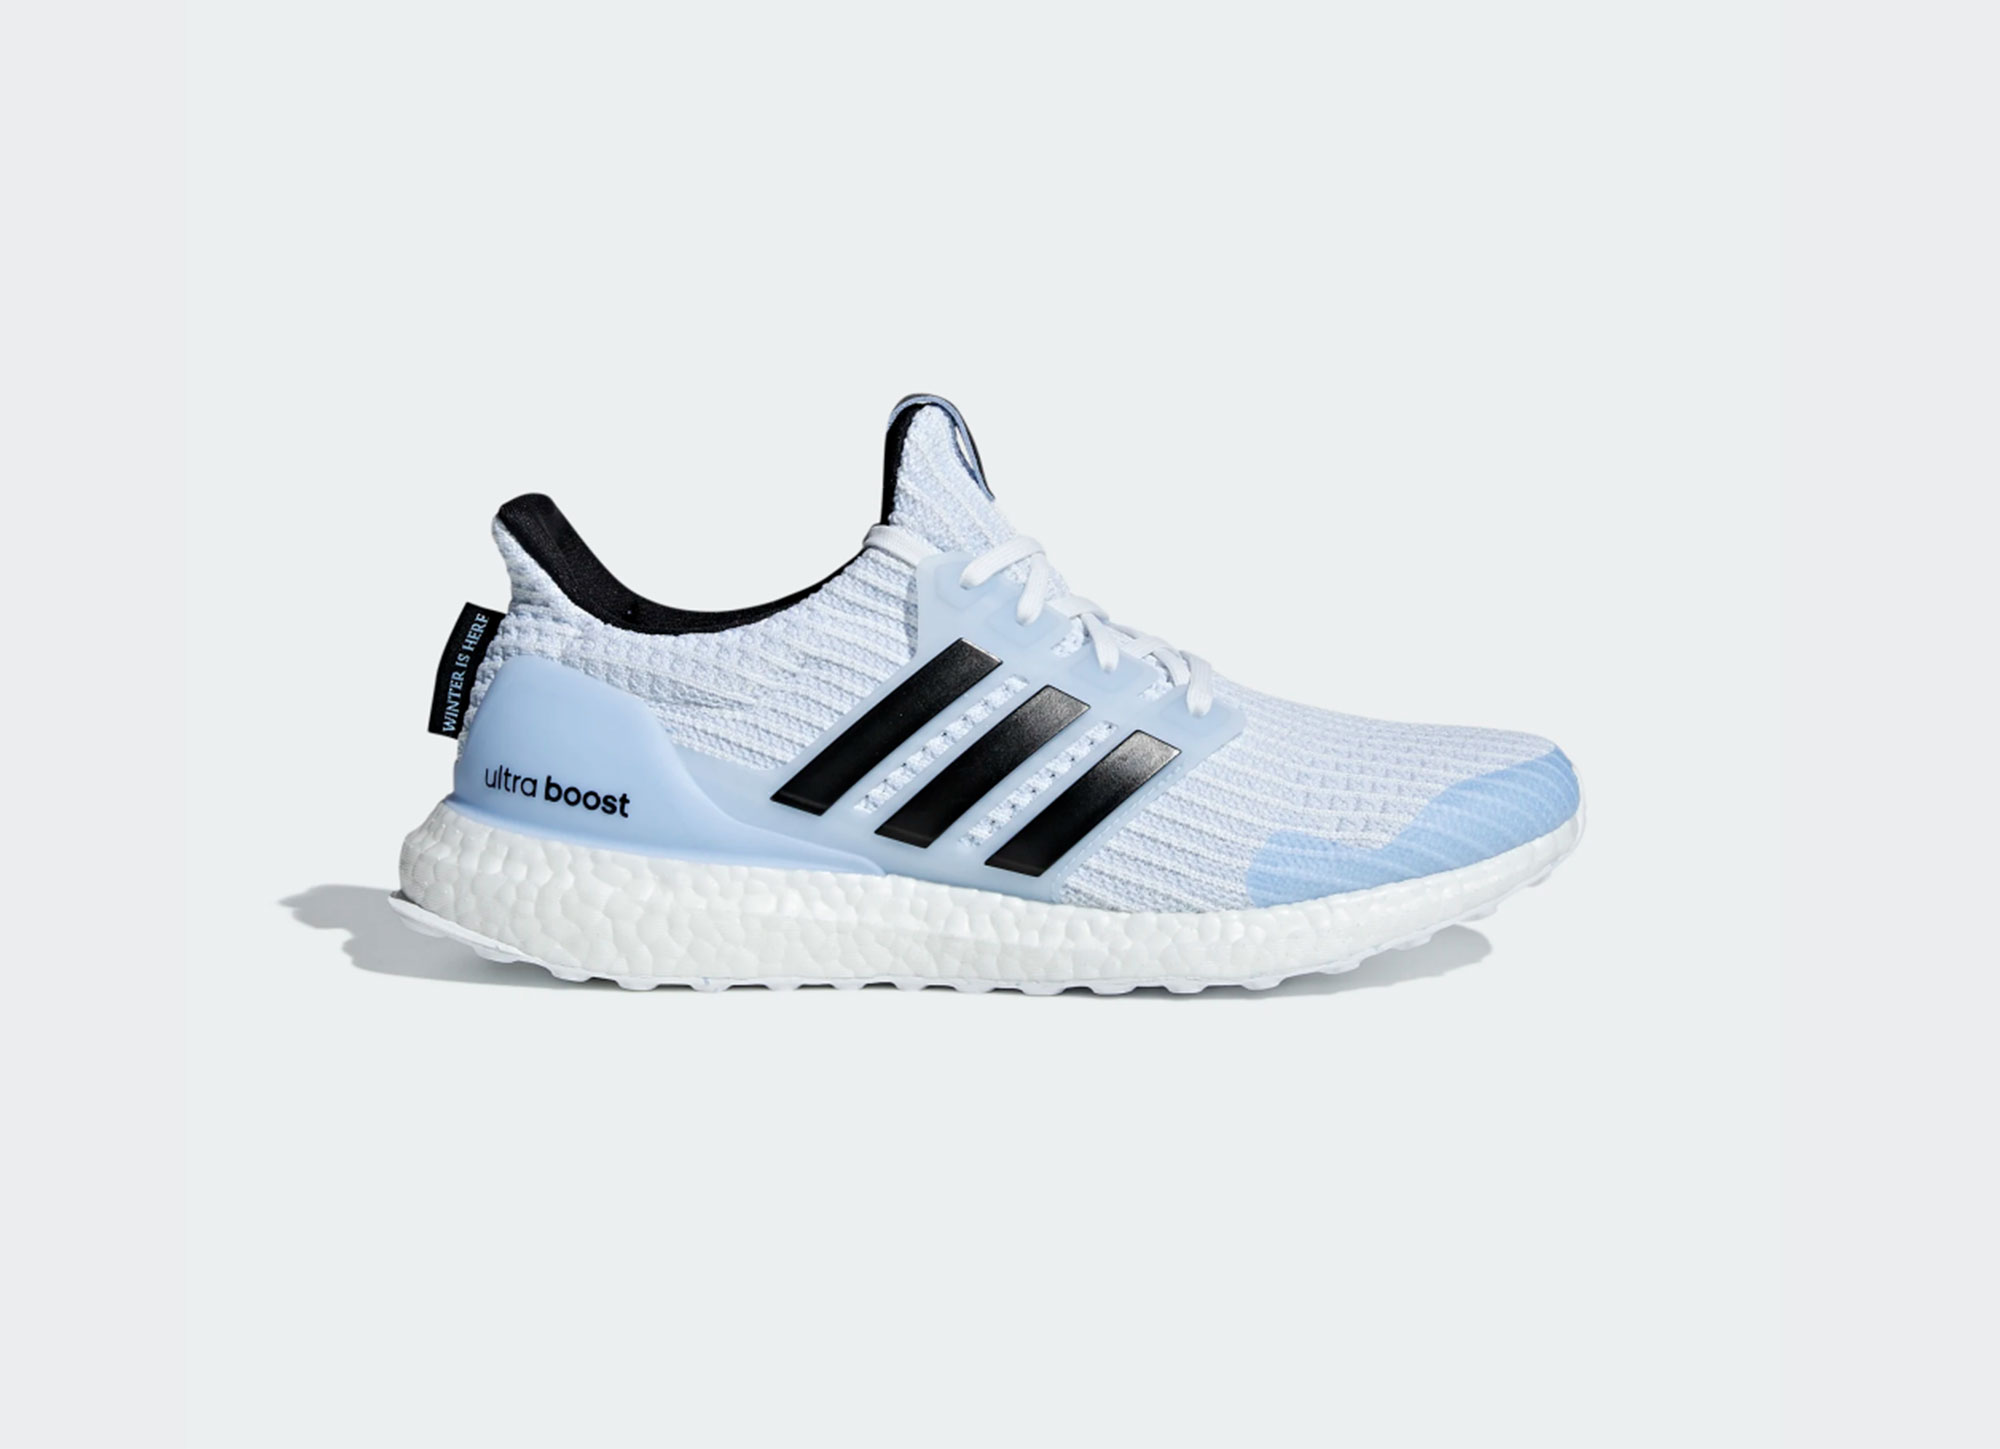 d5cb99c2b Adidas x Game of Thrones White Walker Ultraboost Shoes